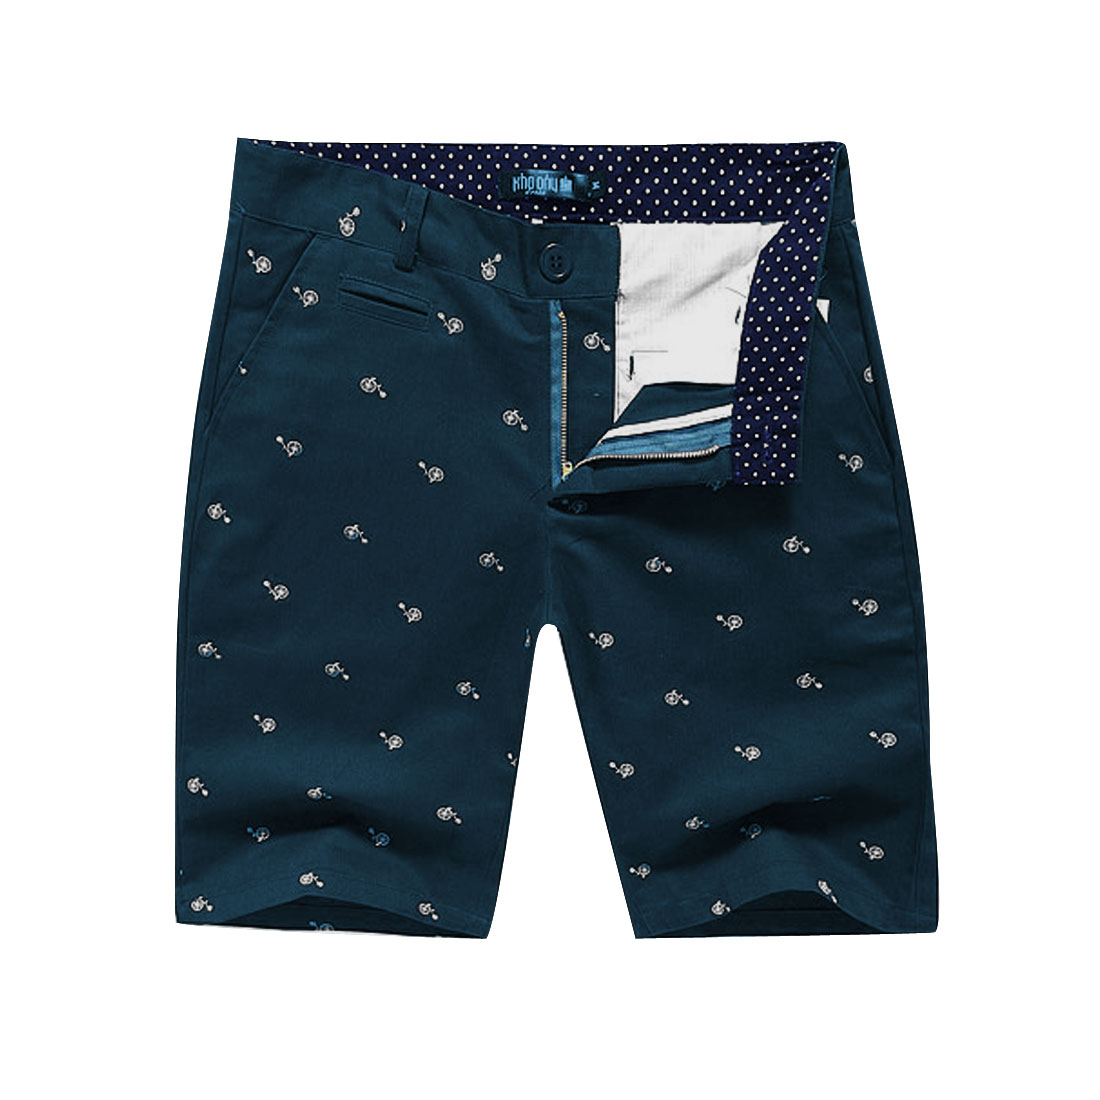 Men Buttoned Slant Pockets Zipper Fly Modern Short Pants Dark Teal W33